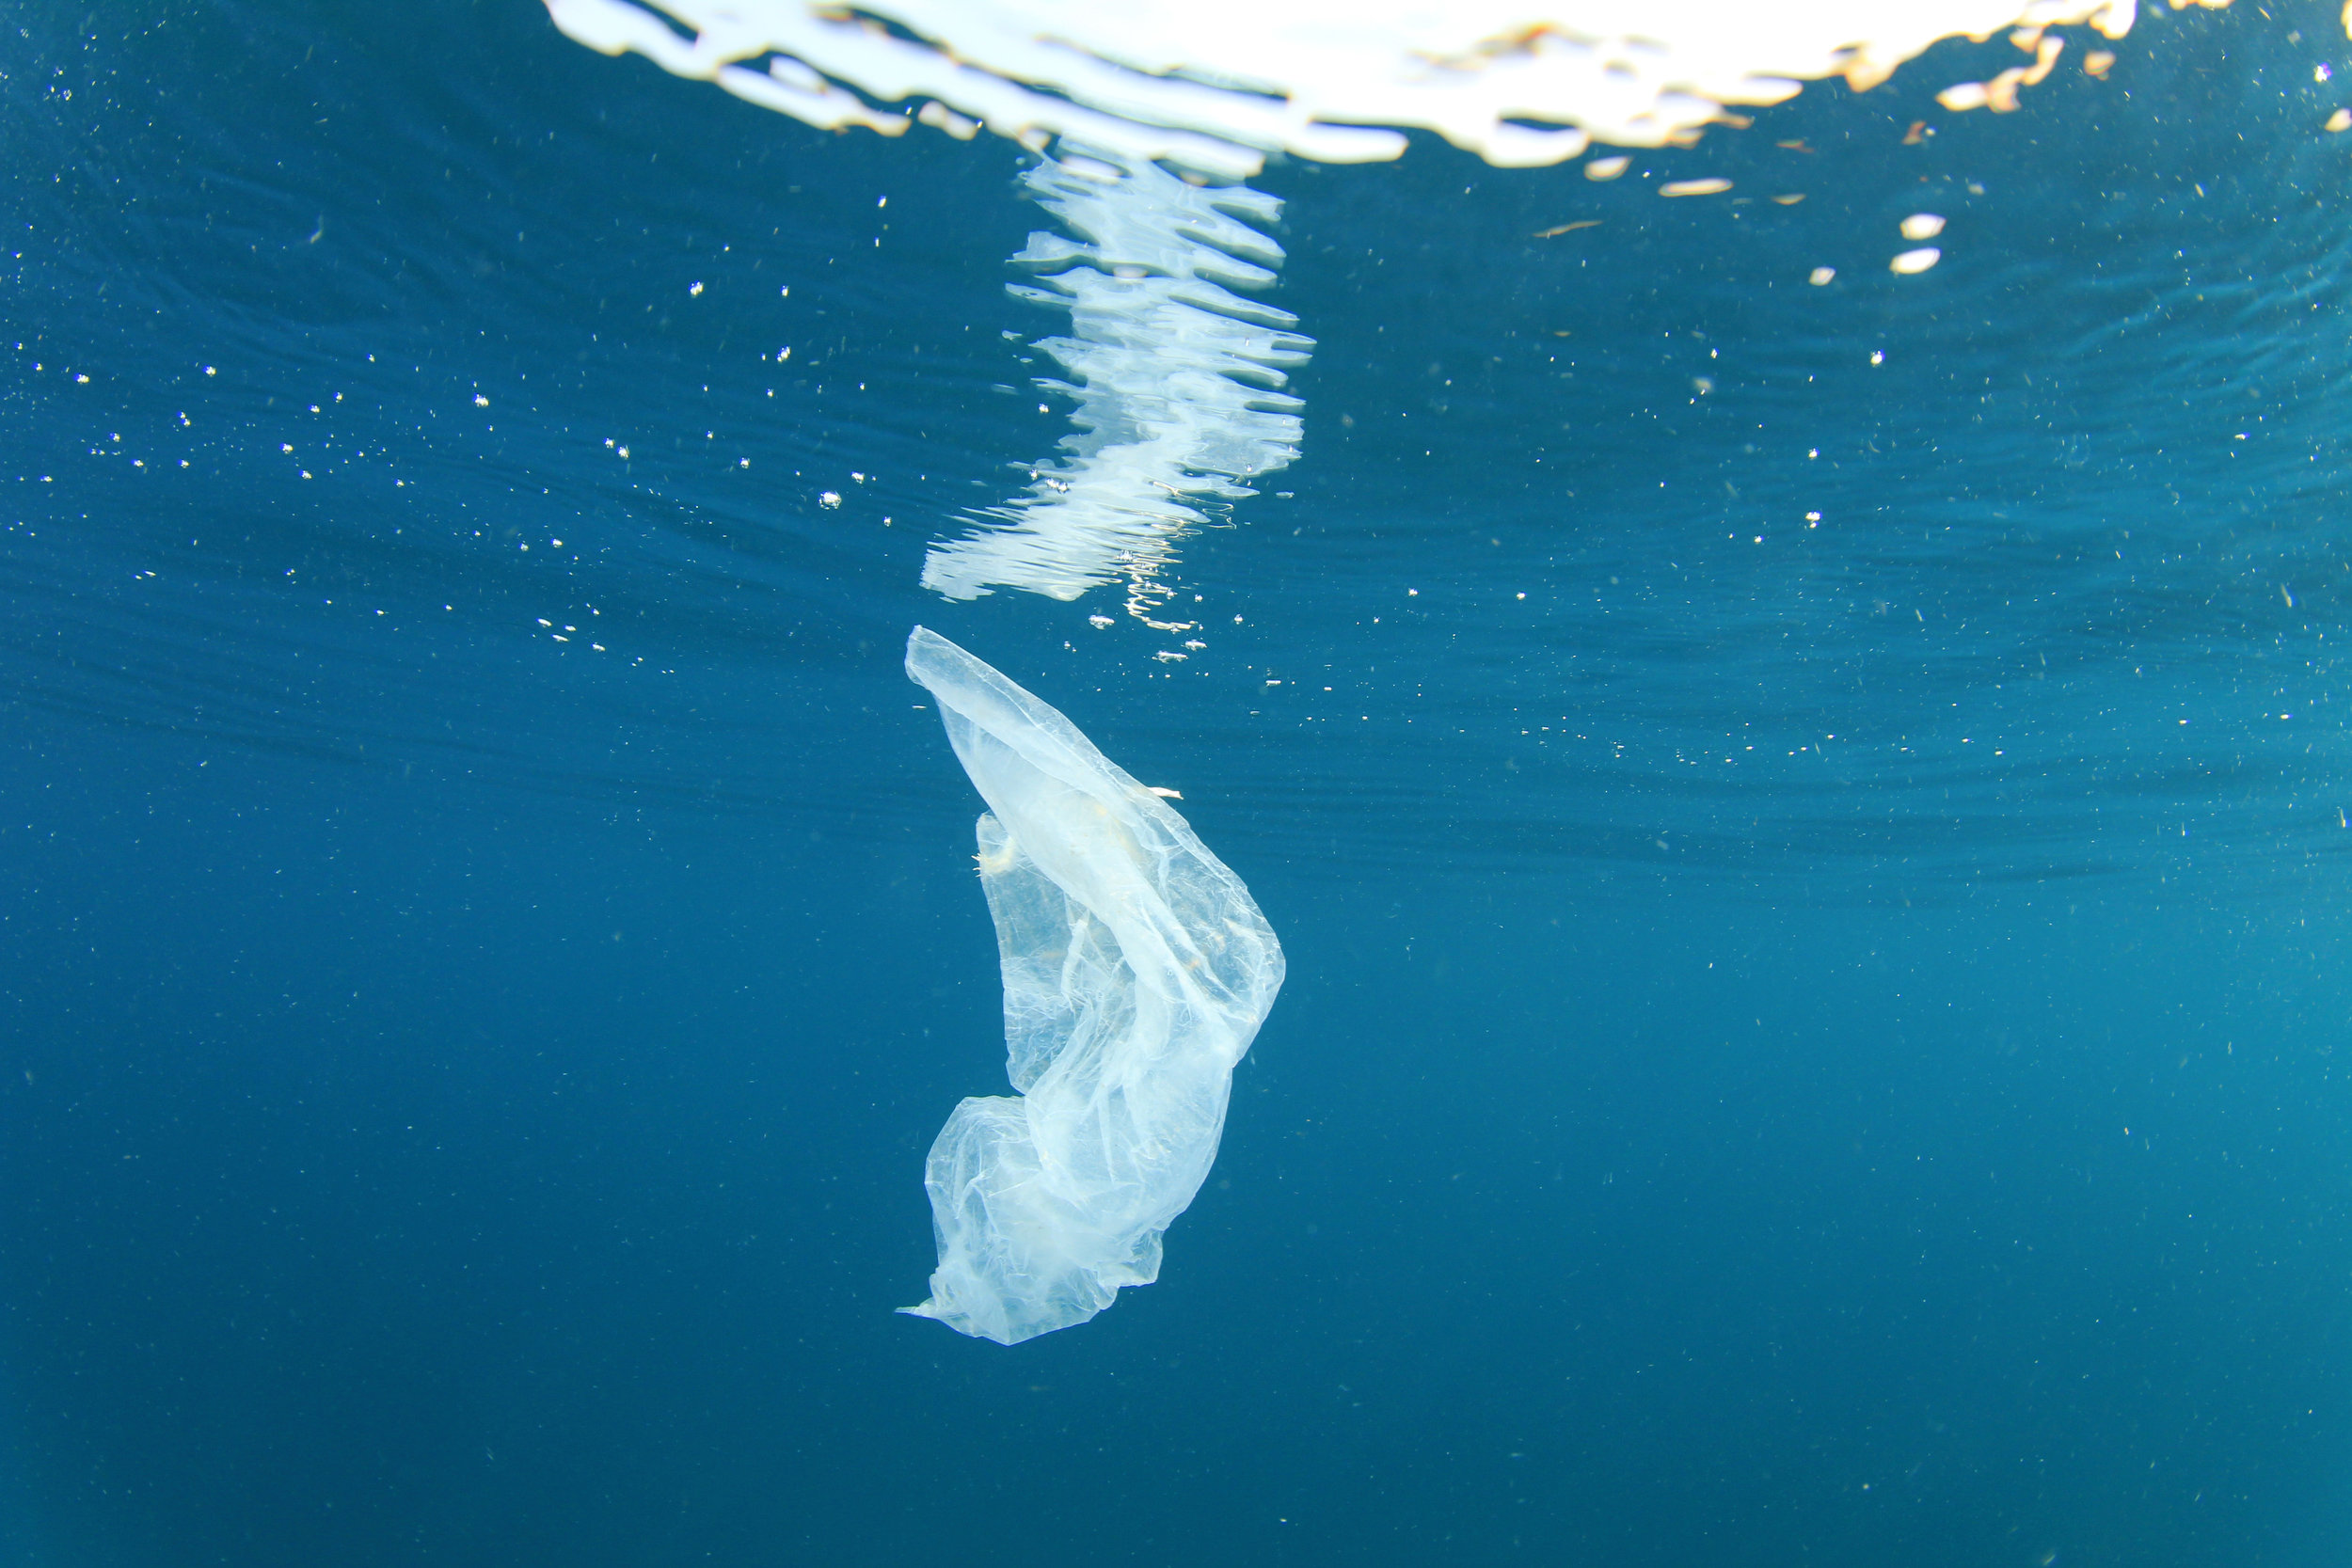 Why Recycled Plastics? - Every year, 8 million metric tons of plastic are dumped into our oceans. Recycling this plastic is expensive and technologically challenging so it is absolutely necessary for us to look for ways to make recycling economically feasible if we are to preserve our vital marine habitats.